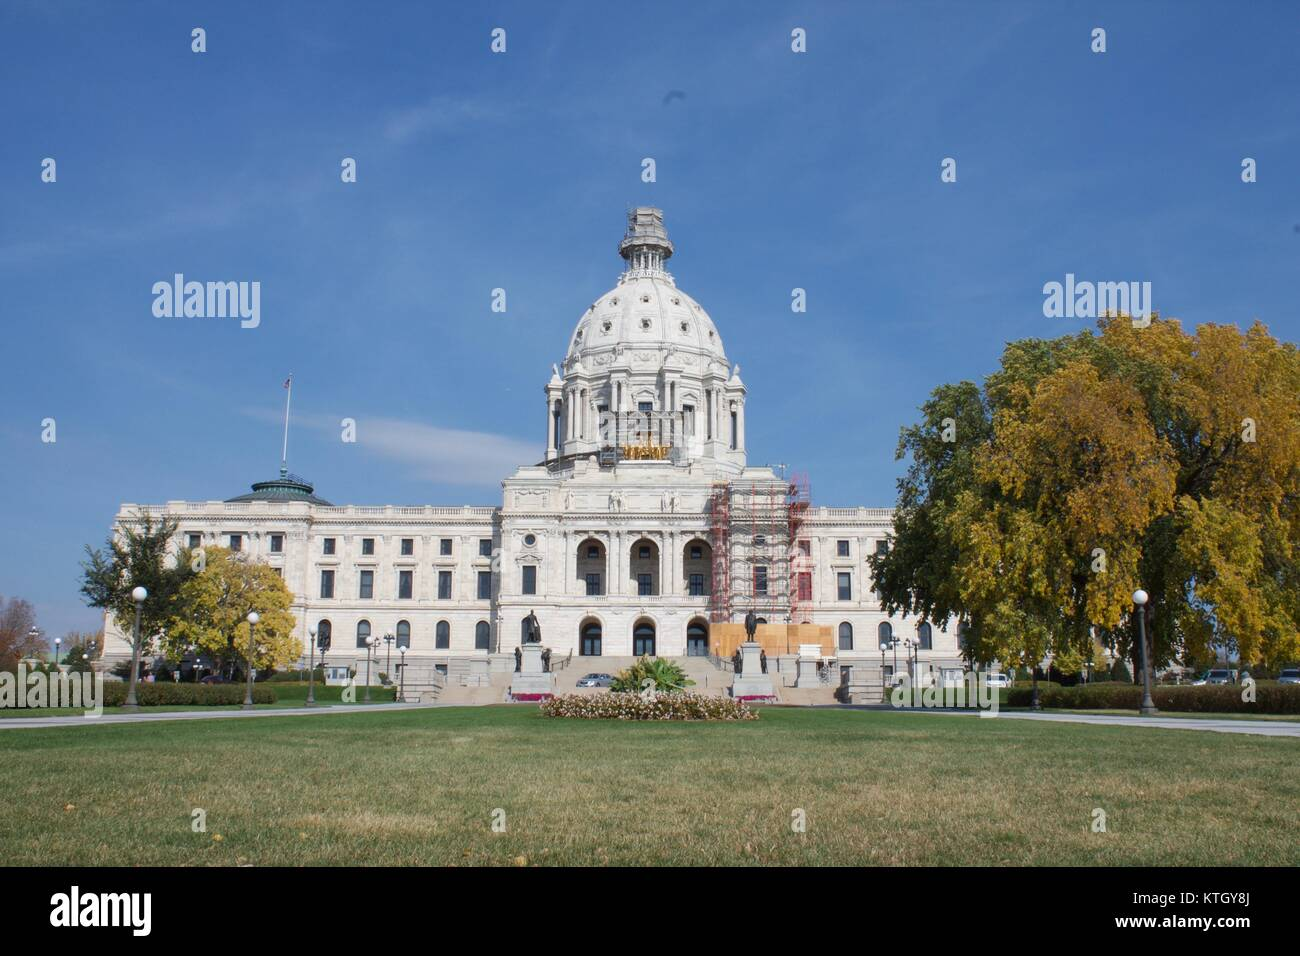 Exterior daytime stock photo of Minnesota state capital building in St. Paul, Minnesota in Ramsey County - Stock Image